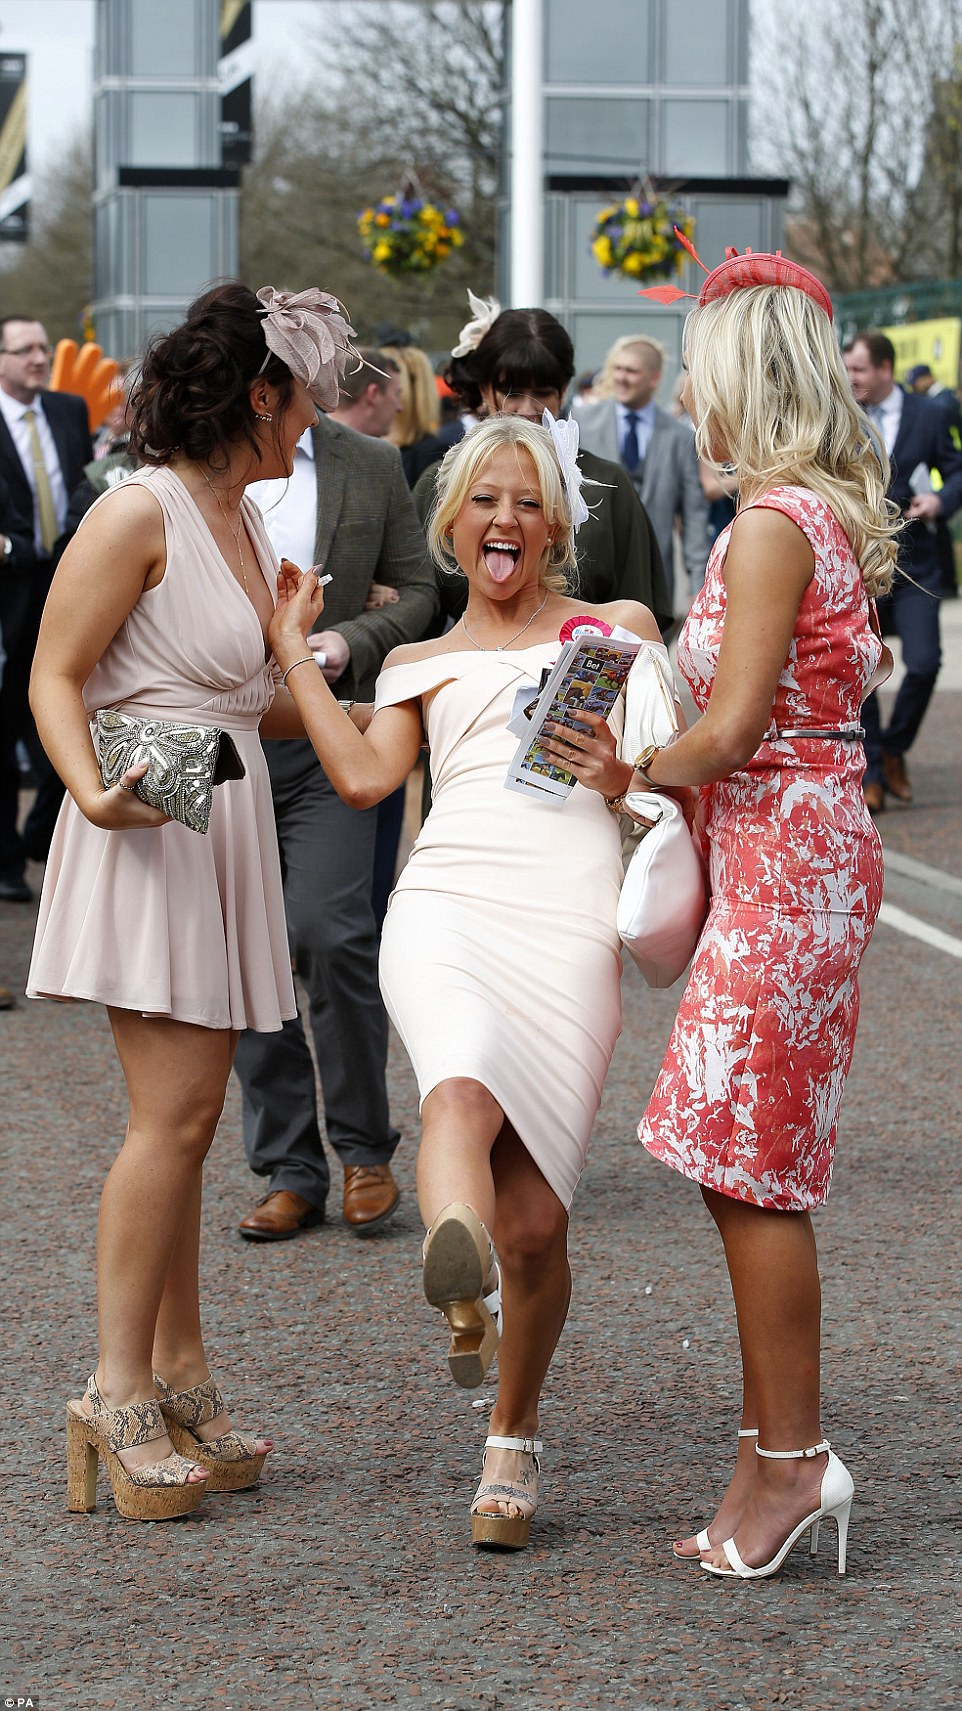 The day was only just getting started but already partygoers seemed to be in a festive mood